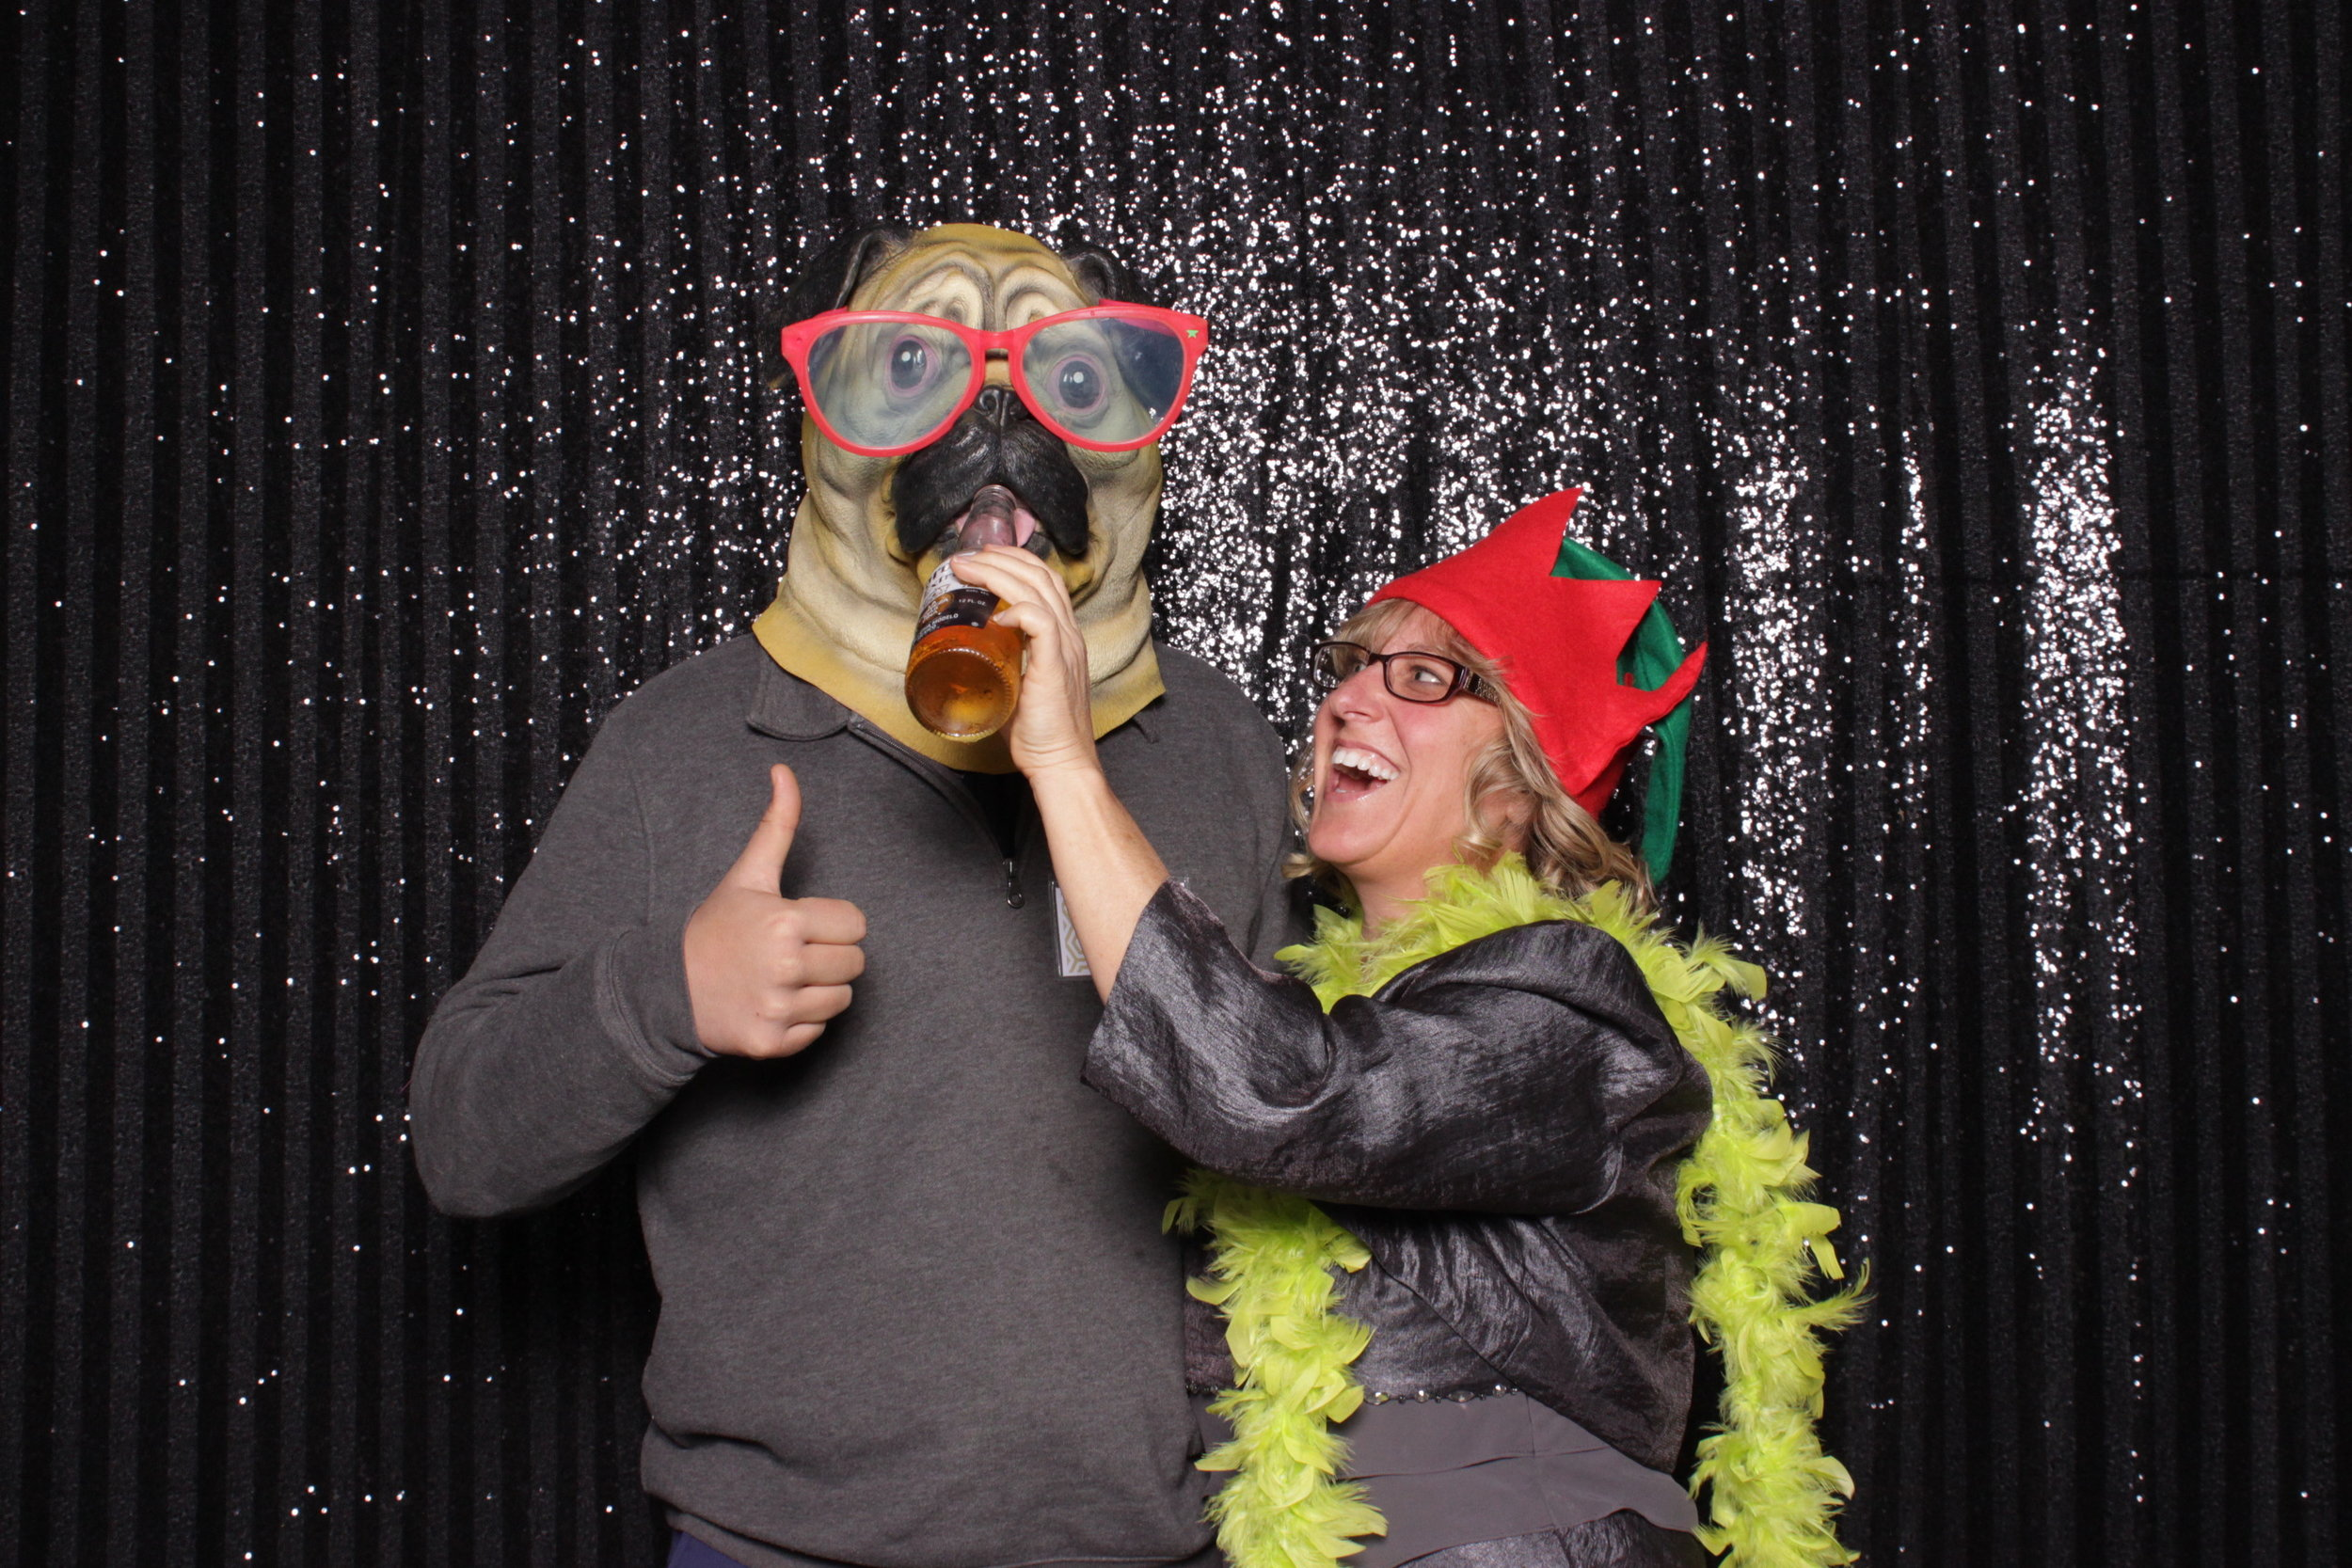 Chico-photo-booth-rental-never-run-out-of-film